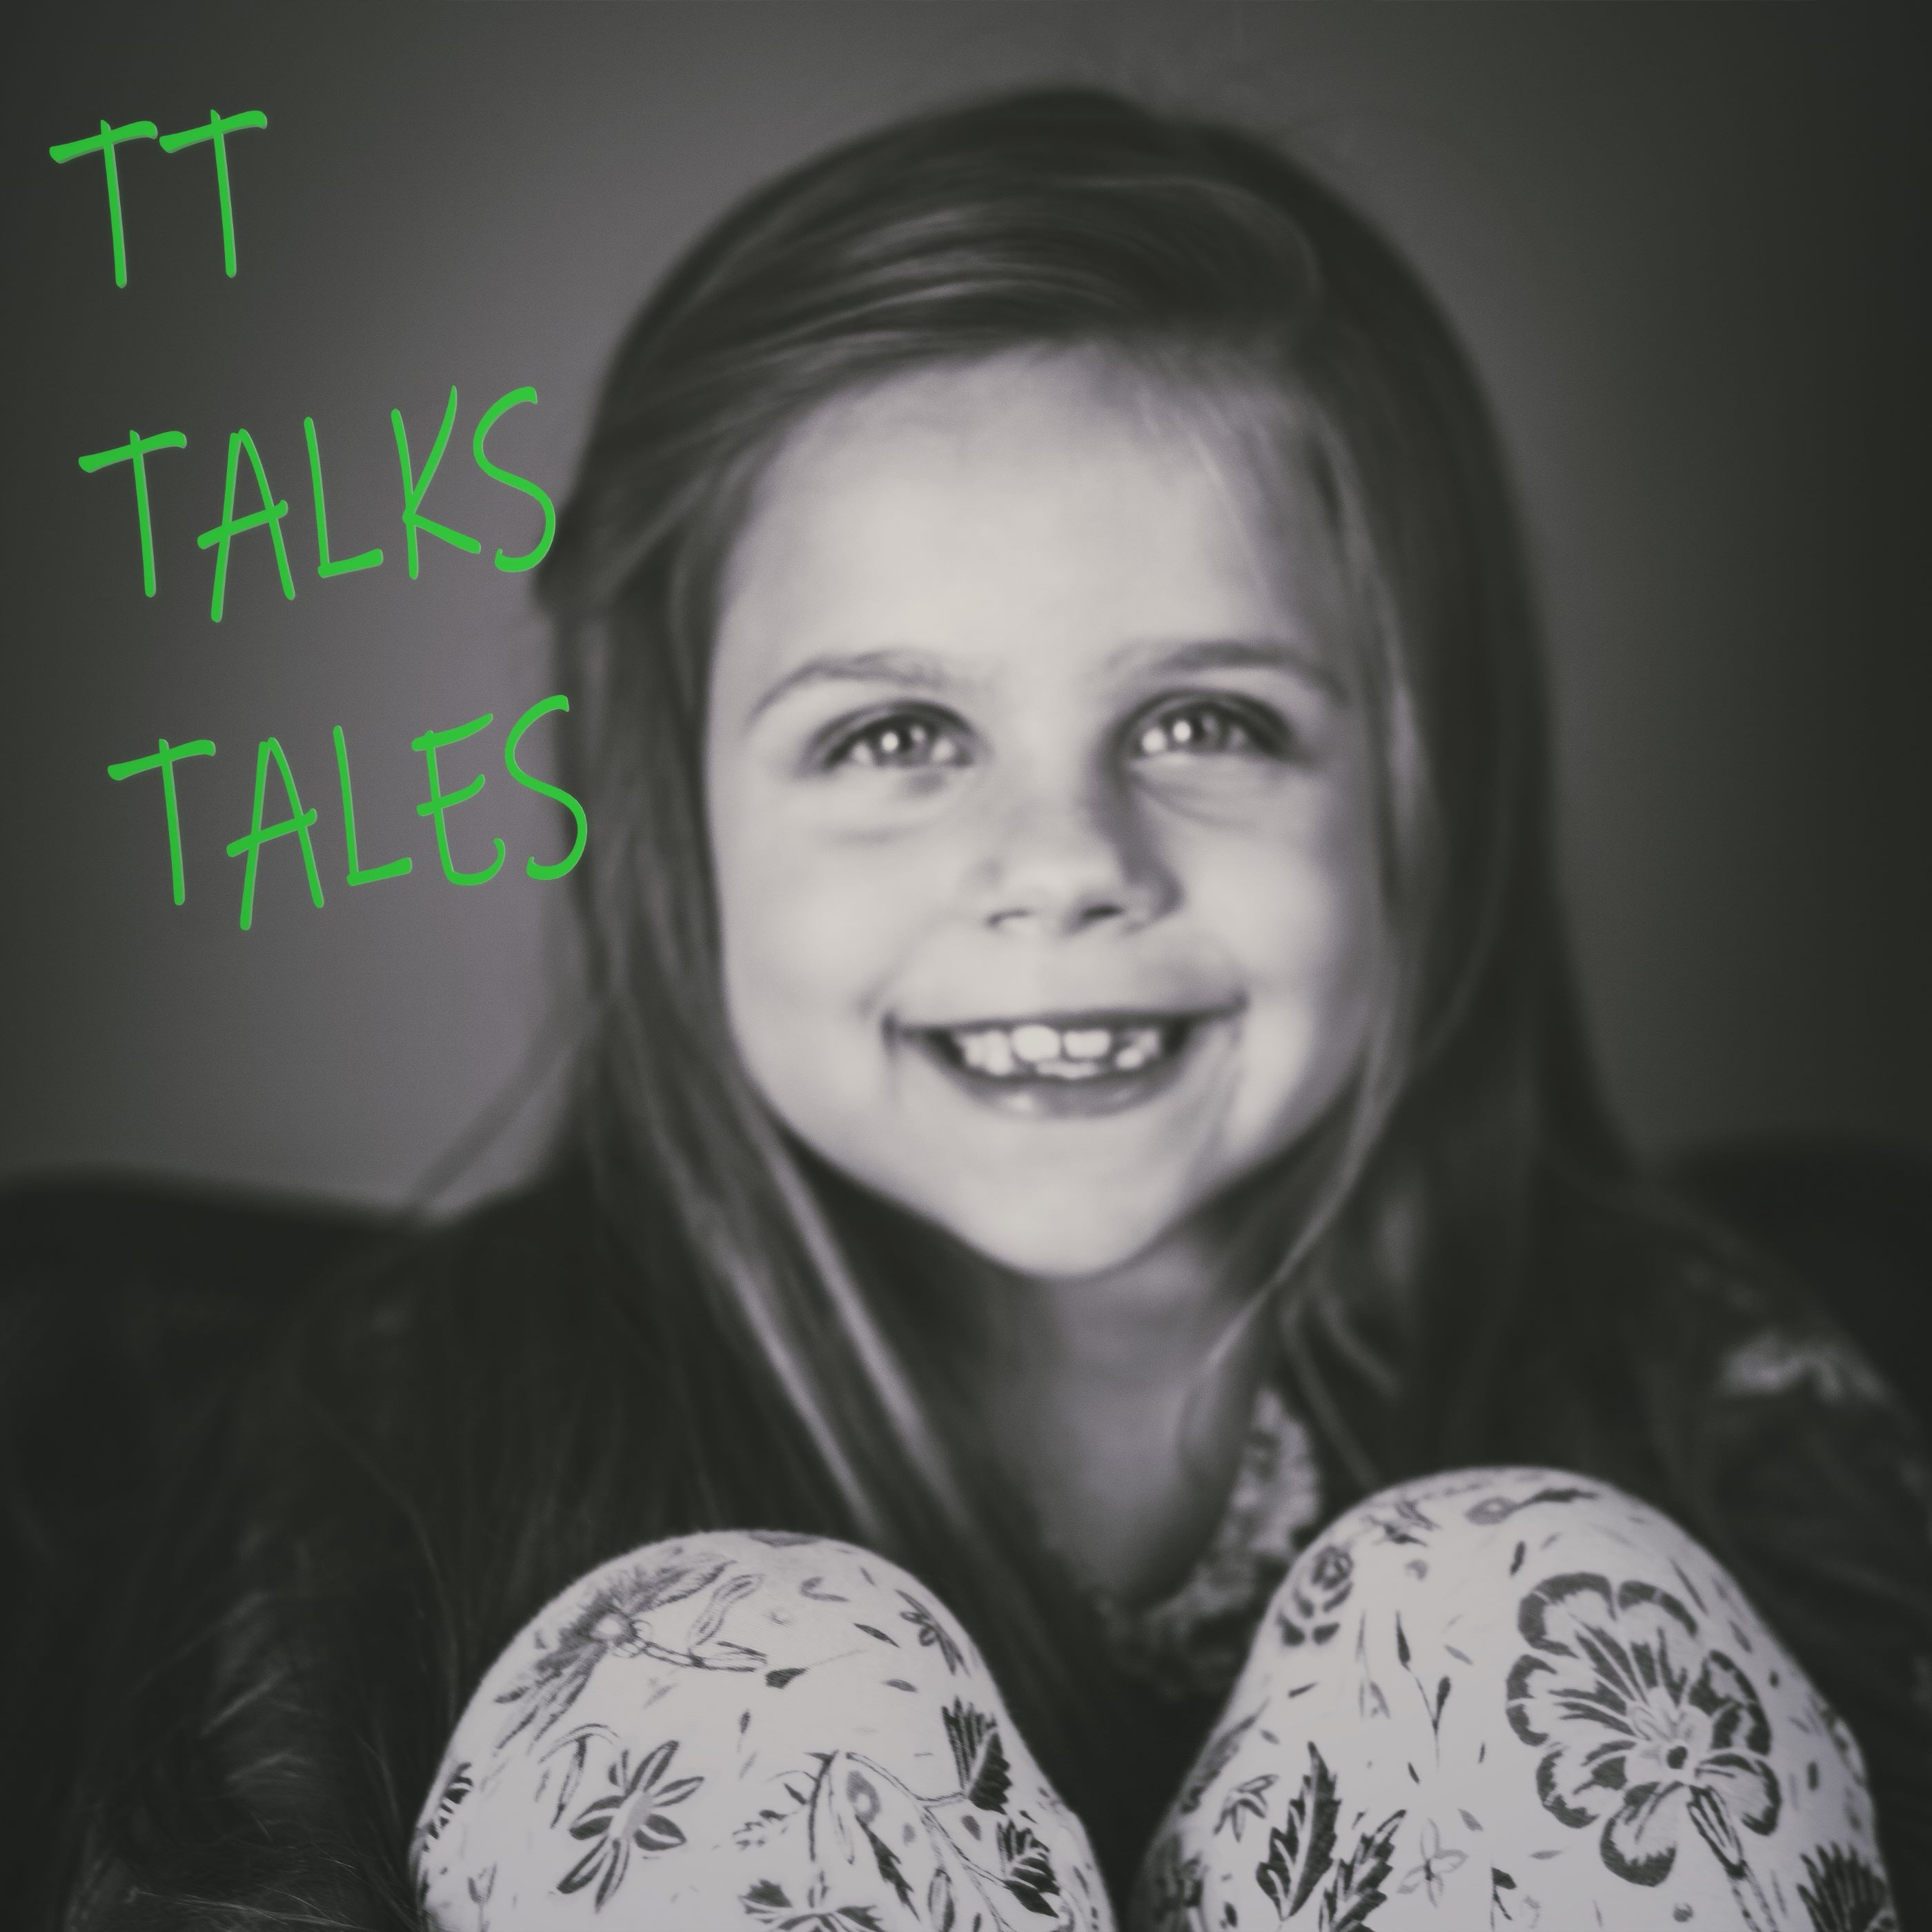 TT Talks Tales